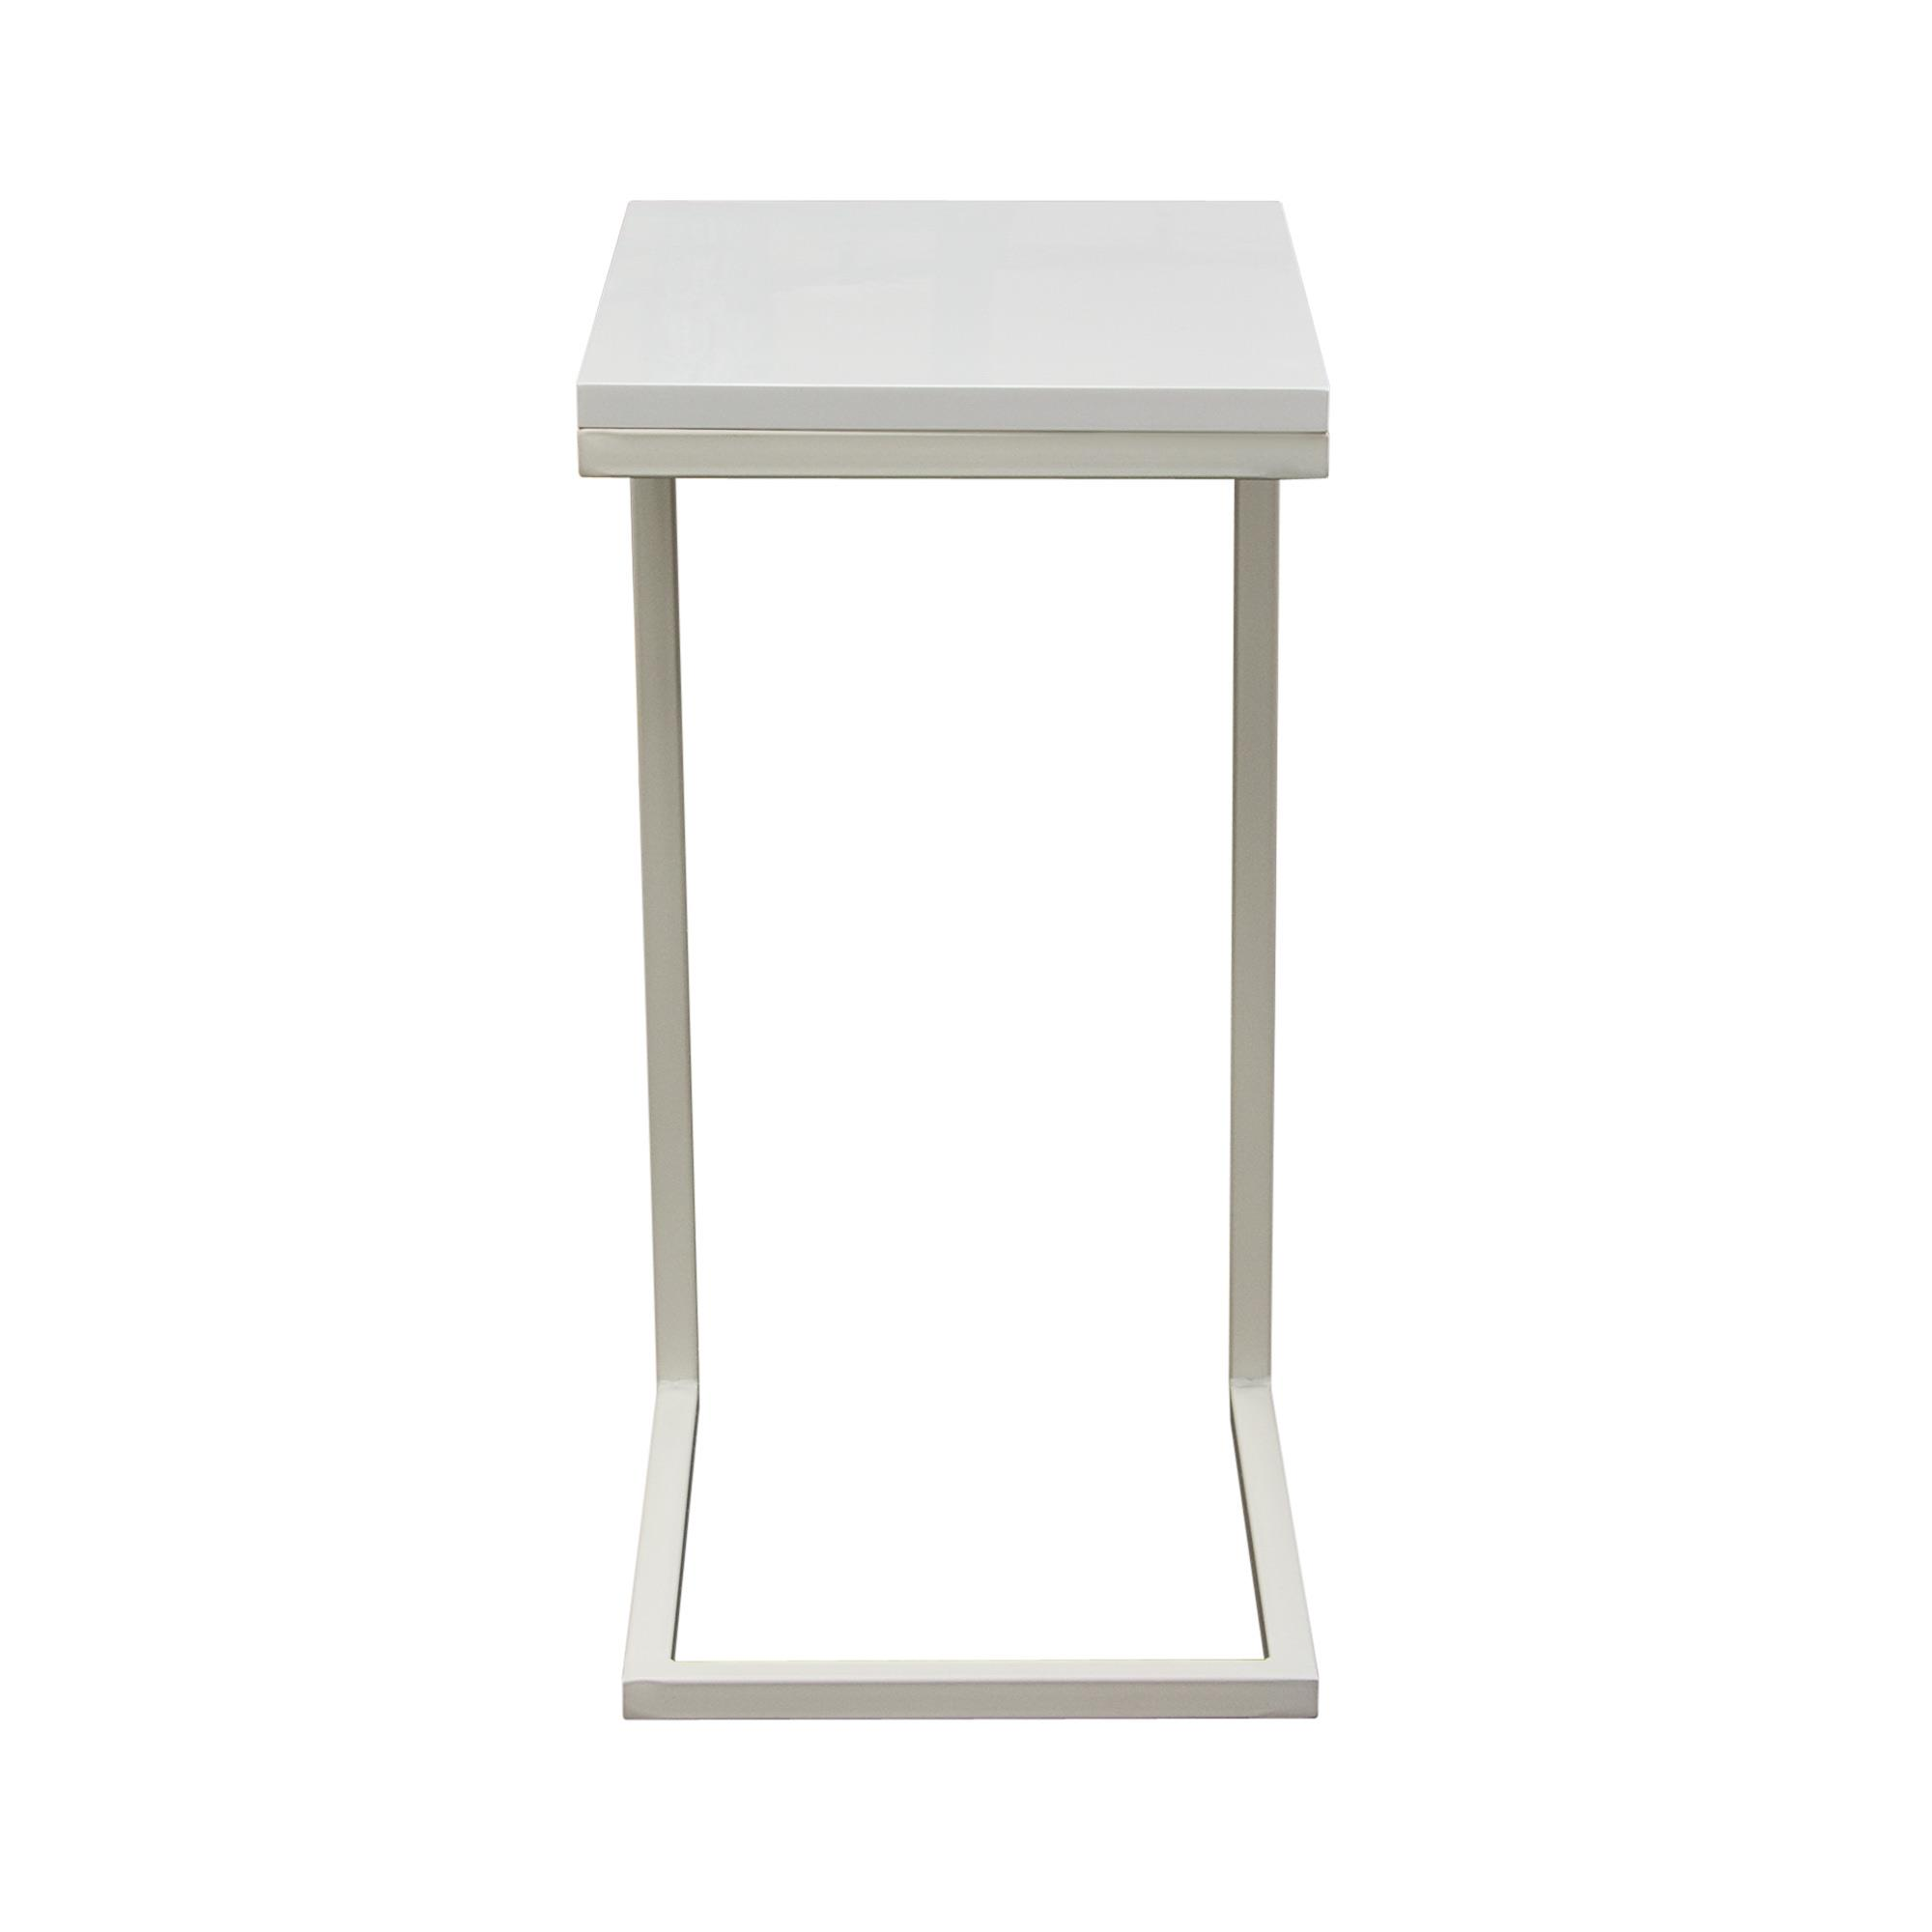 Diamond Sofa Occasional Tables & Entertainment Sleek Metal Frame Accent Table - Item Number: EDGESTWH